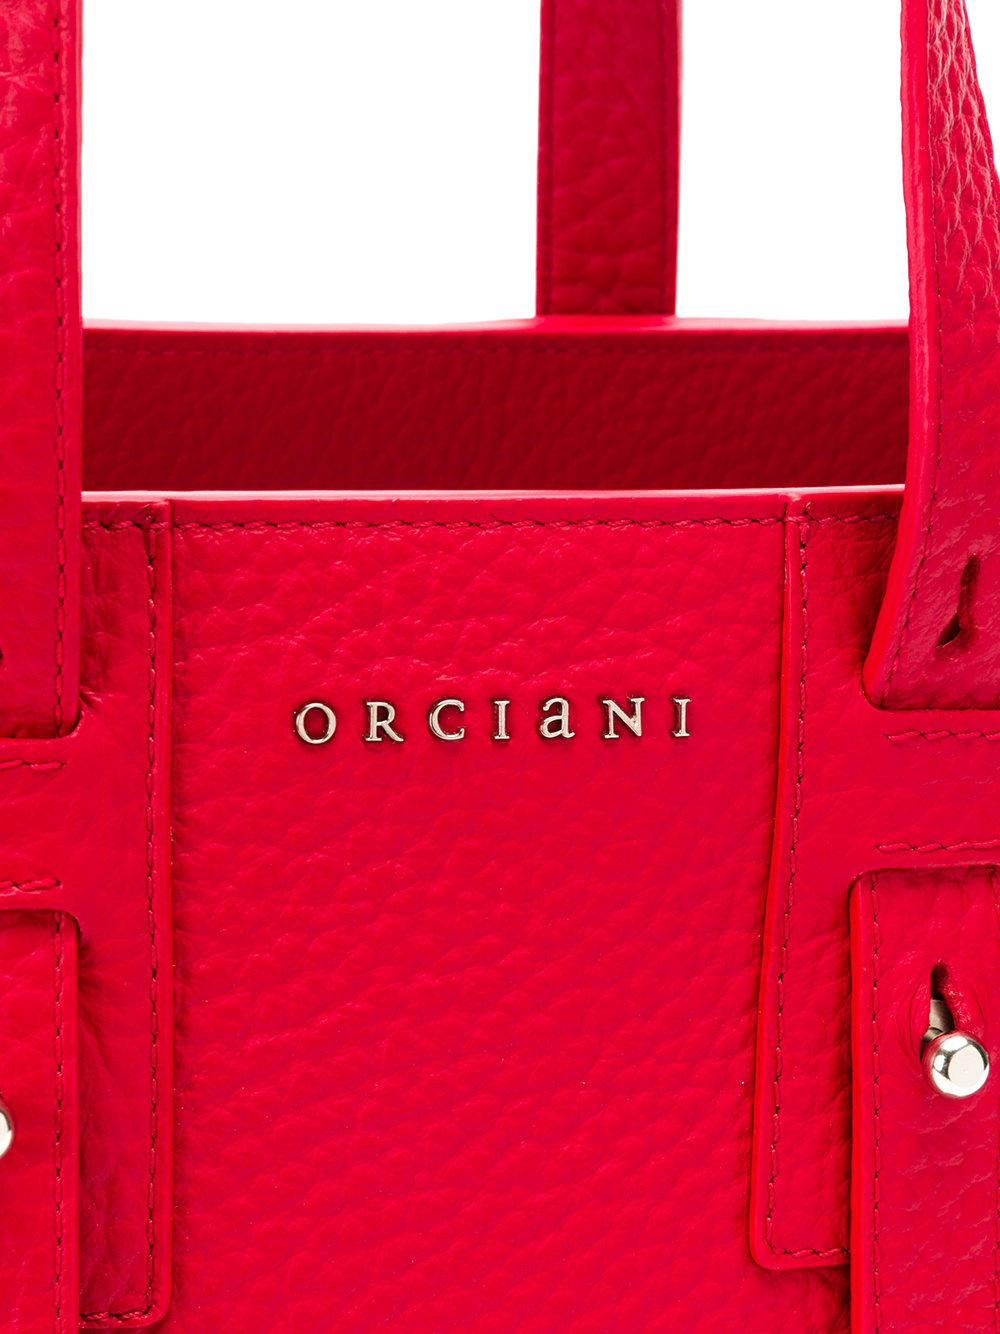 Orciani Leather Top Handle Tote Bag in Red